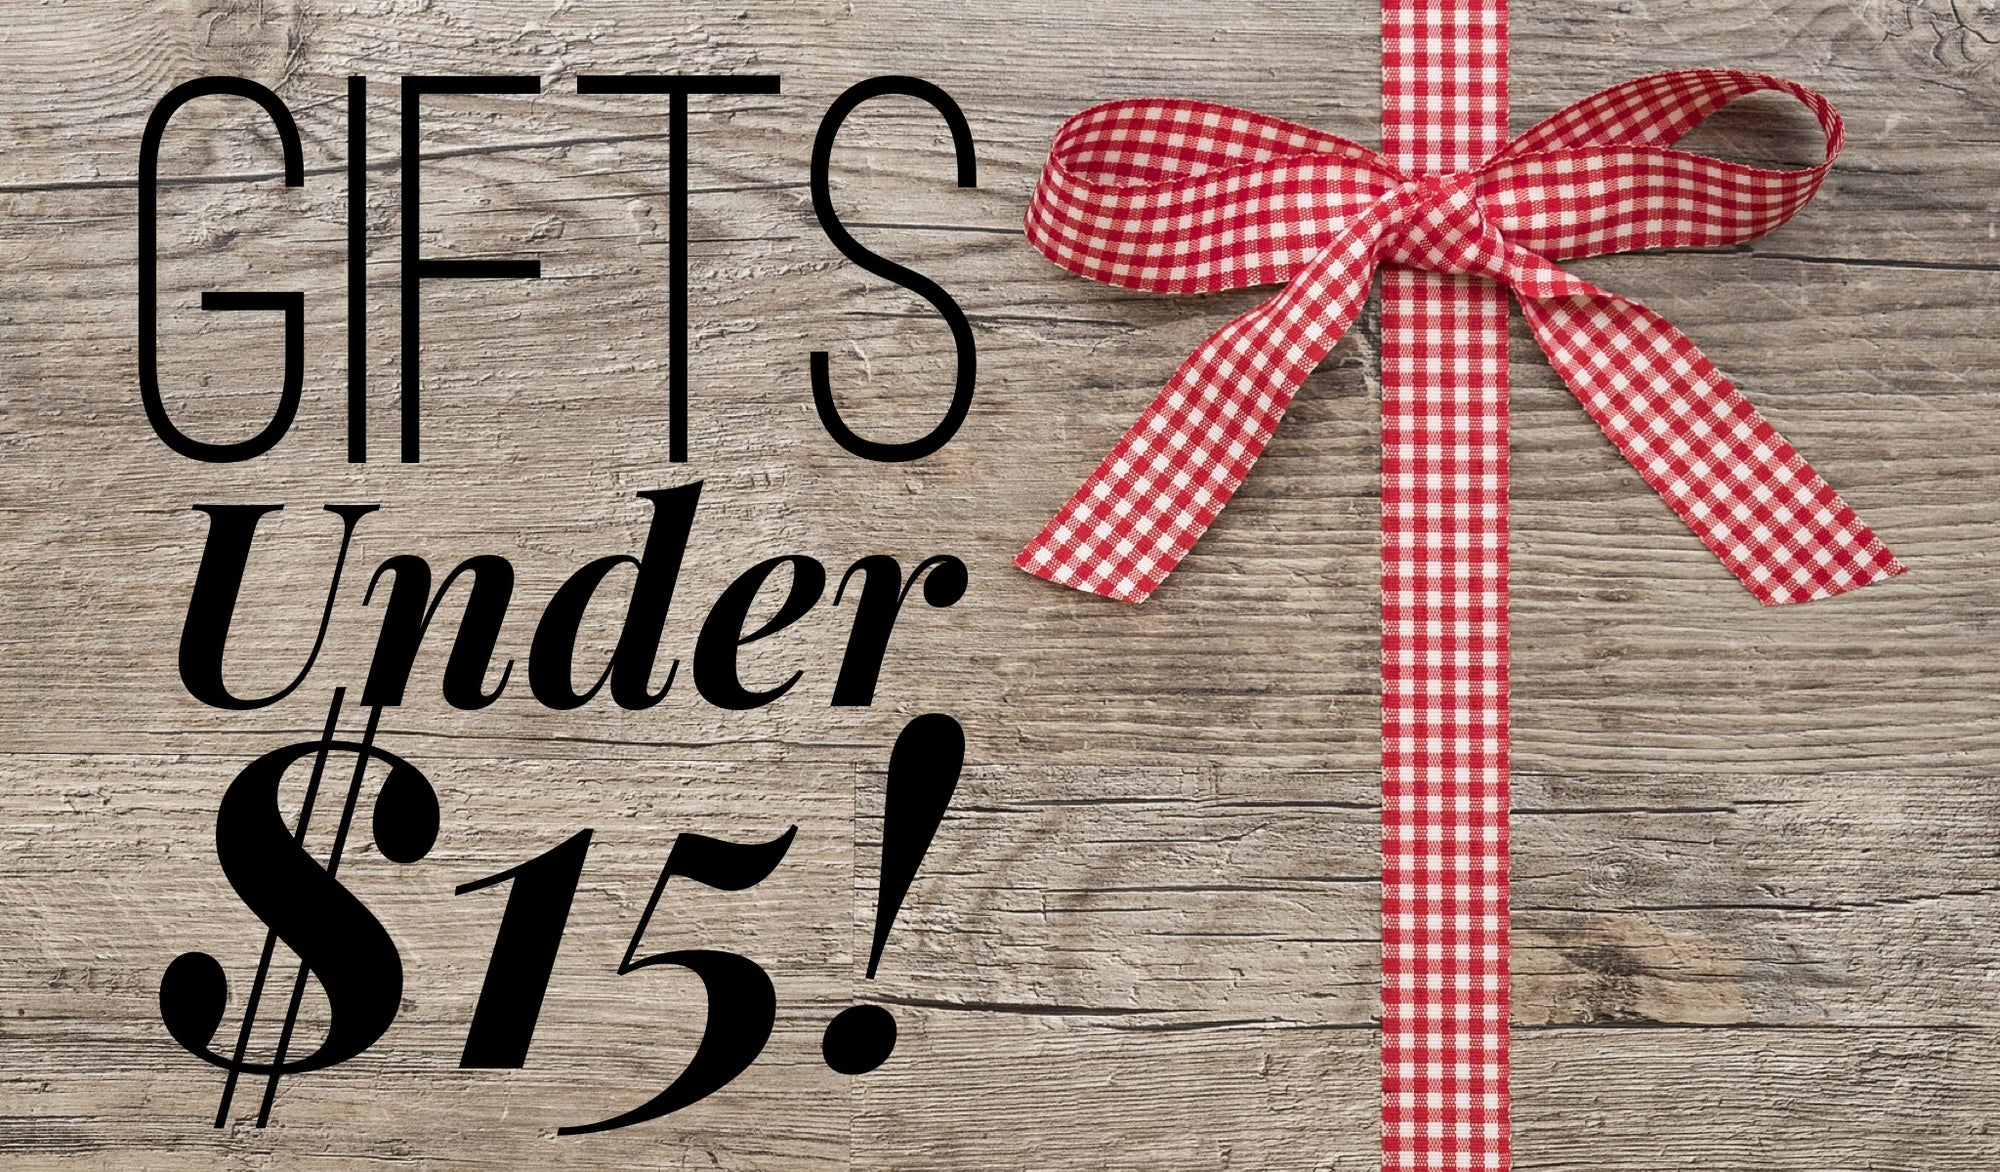 Gift Ideas for Under $15